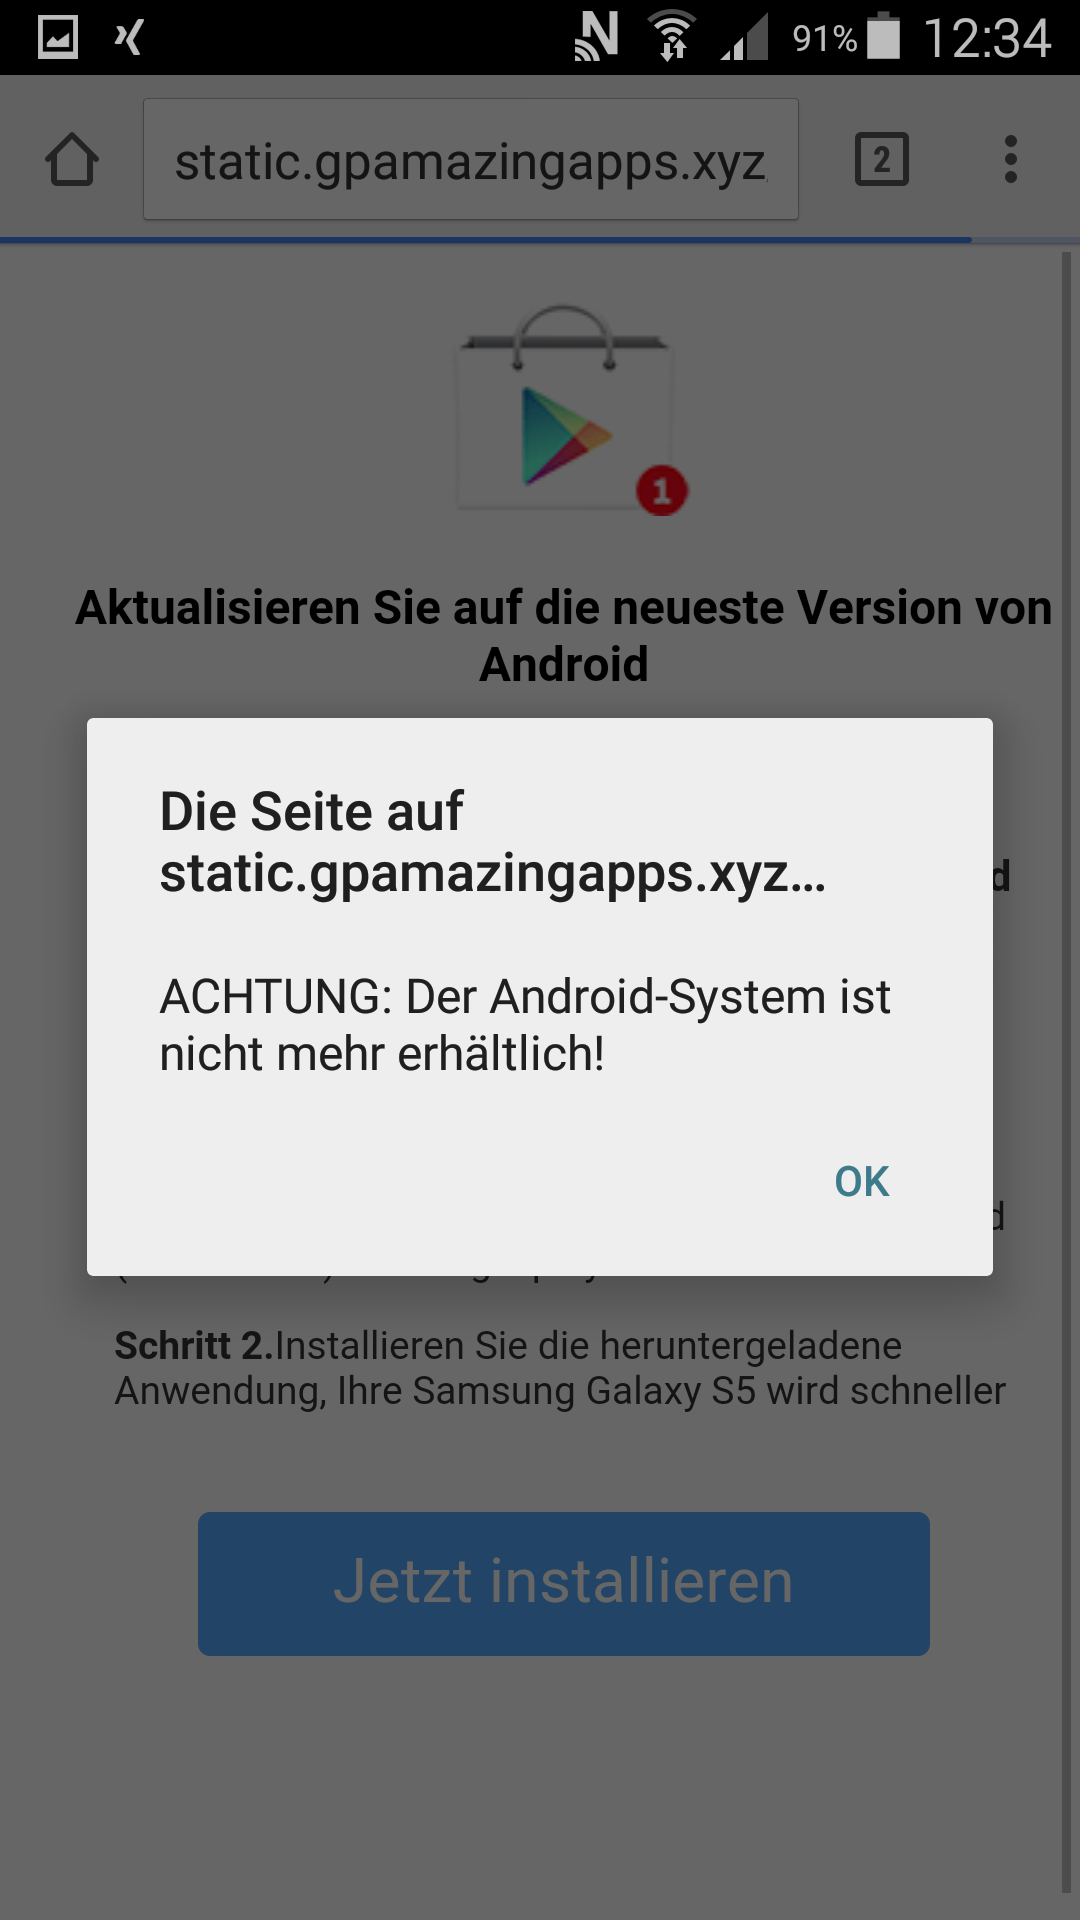 Android dating seiten spam